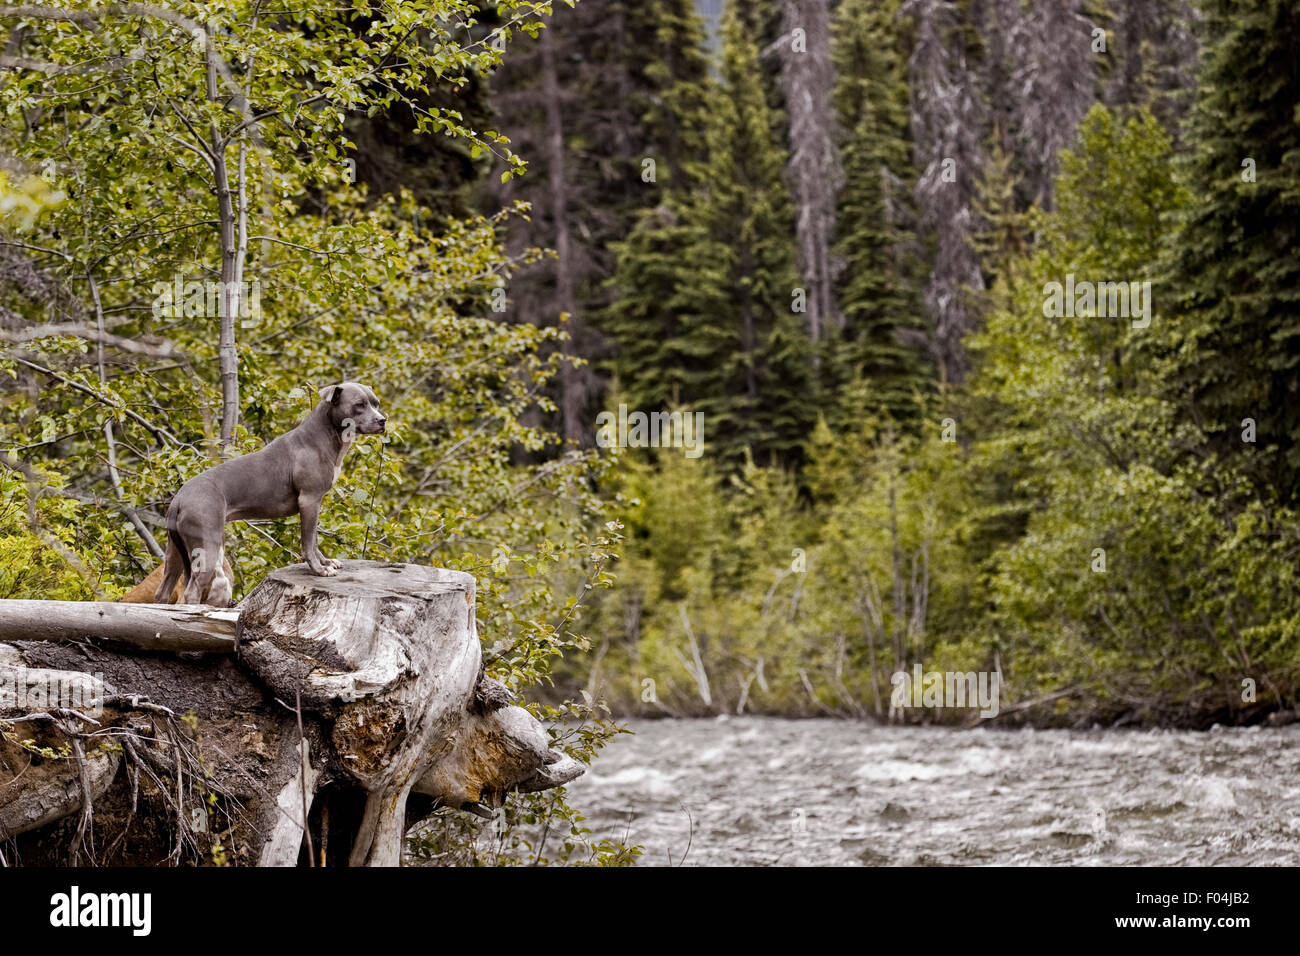 Blue adult Pitbull with front feet up on tree stump at raging rivers edge in fall bloom in forest - Stock Image